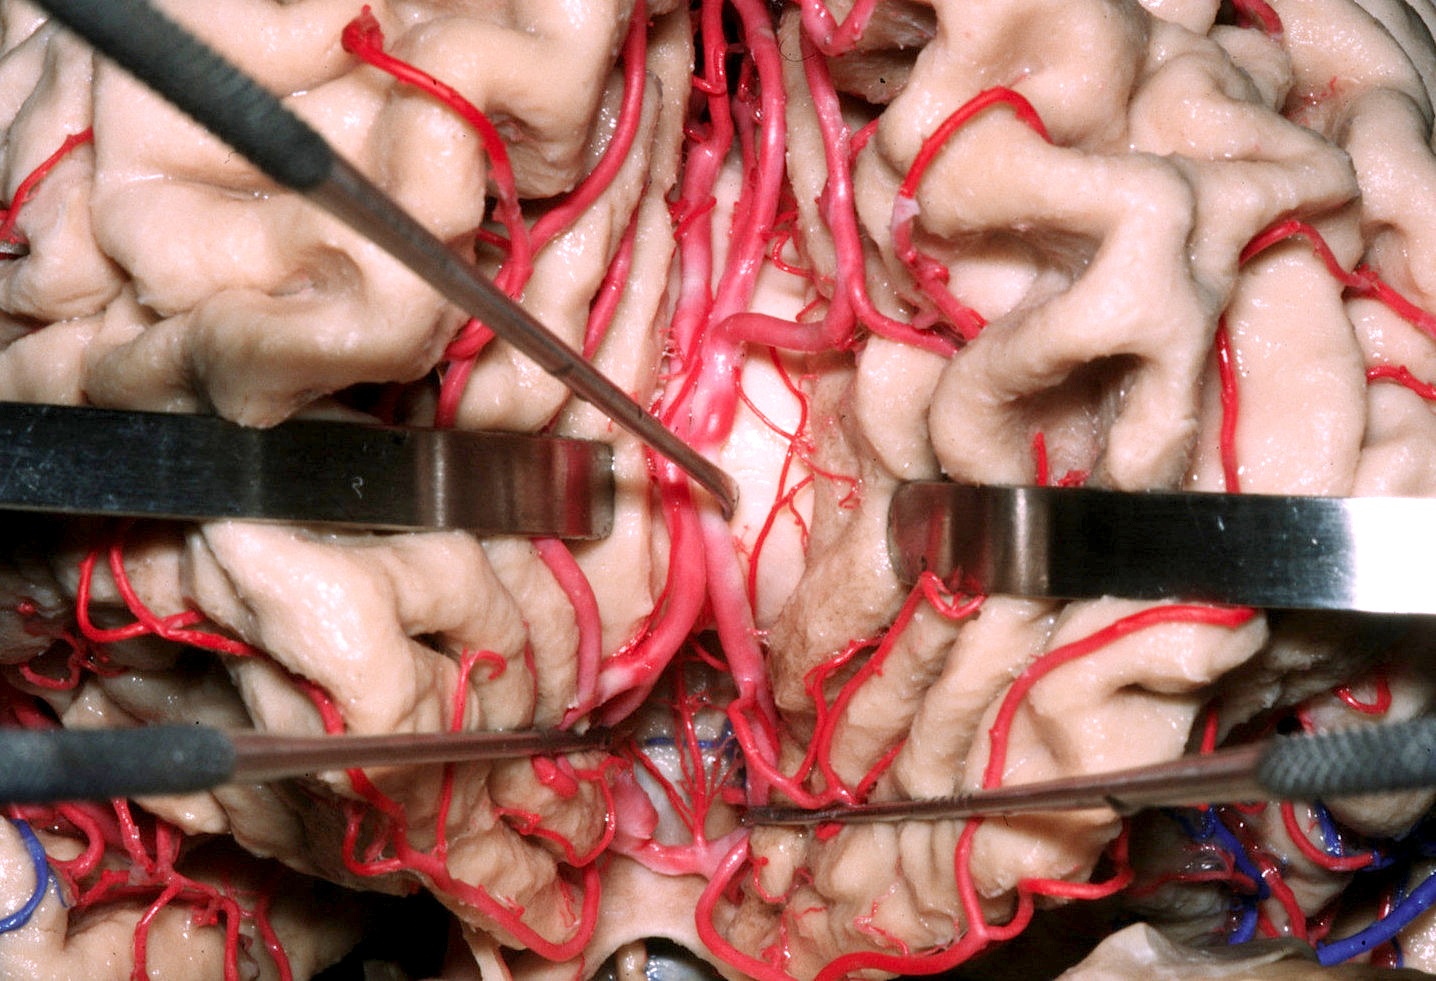 Figure 2: The anterior cerebral artery (ACA) arises from the bifurcation of the internal carotid artery and courses rostromedially dorsal to the optic nerve as the A1 segment. The ipsilateral and contralateral A1 segments run together and connect via the ACoA. The pericallosal arteries are defined as the segments of the ACA distal to the ACoA. They continue superiorly into the interhemispheric fissure, upward on the medial surface of the hemisphere, and then course posteriorly on the superior surface of the corpus callosum, staying mostly below the lower margin of the falx (Image courtesy of AL Rhoton, Jr).